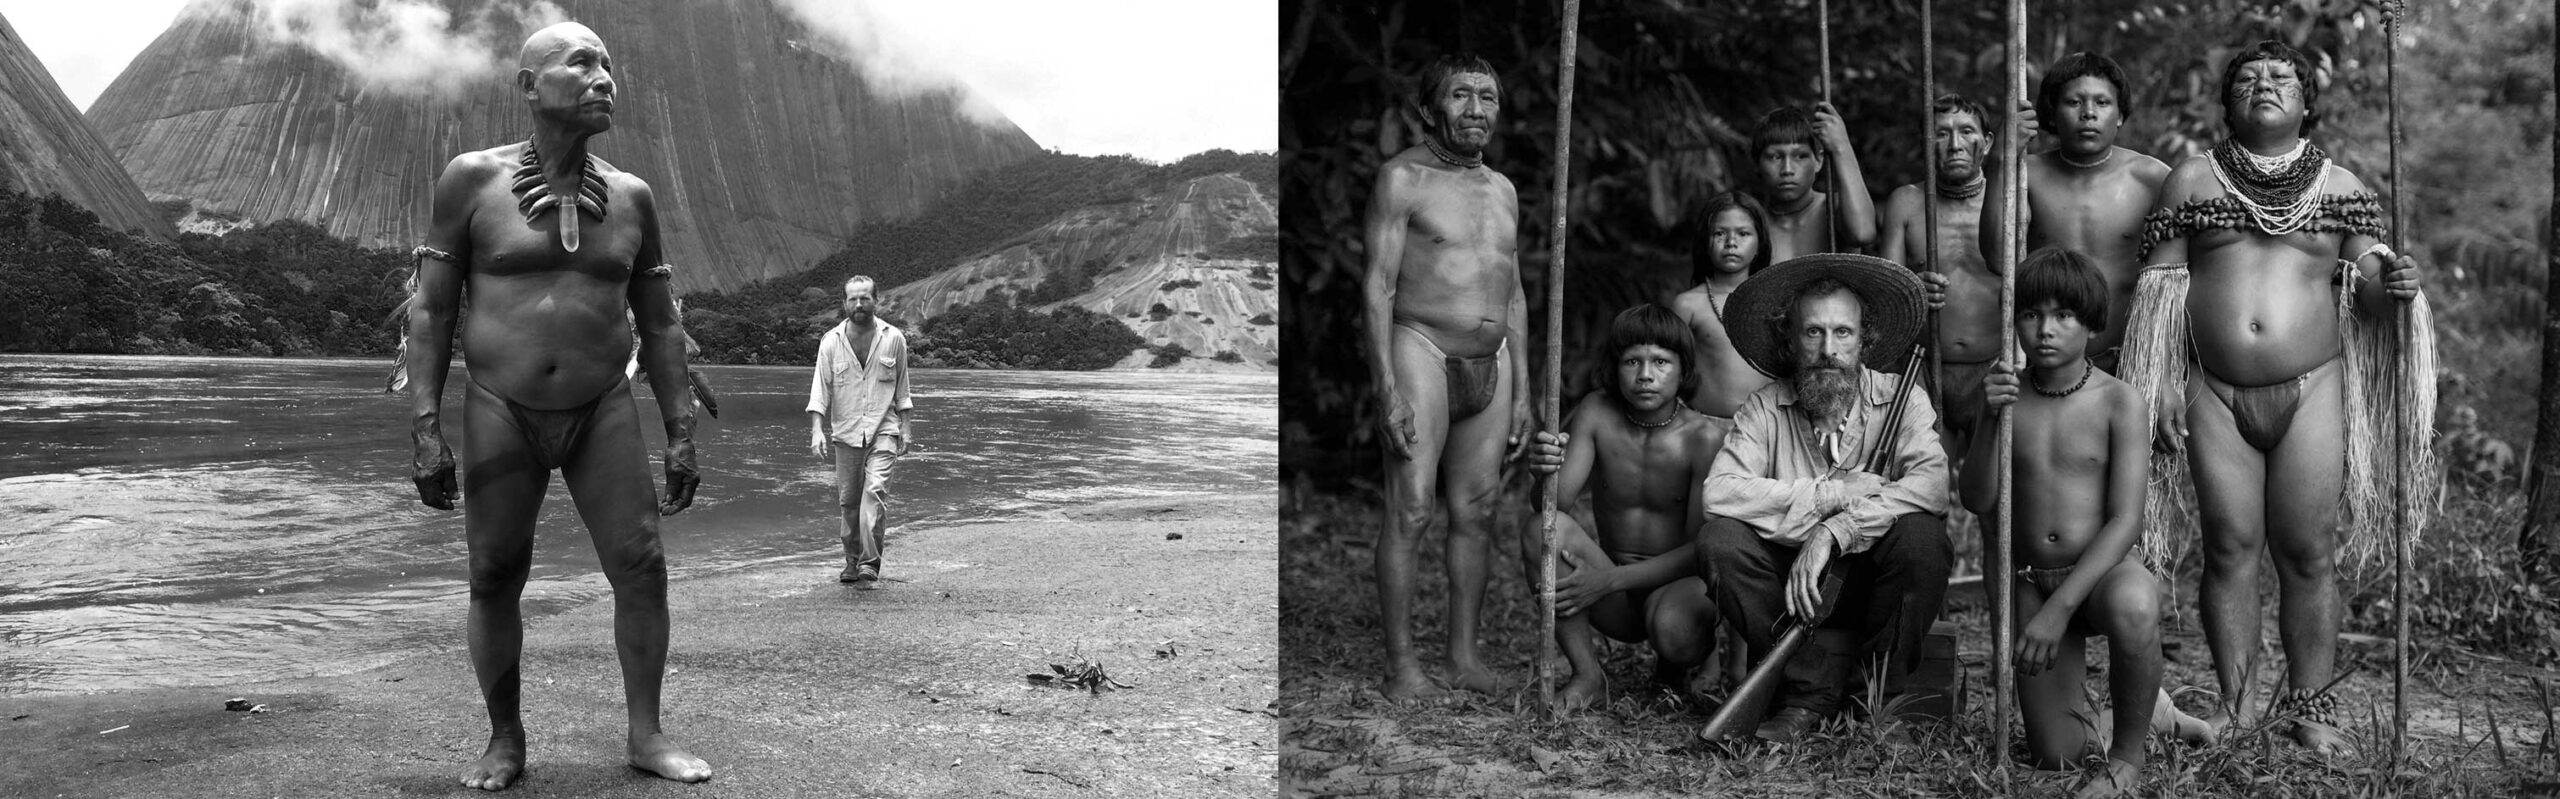 Black and white photo of indigenous people.